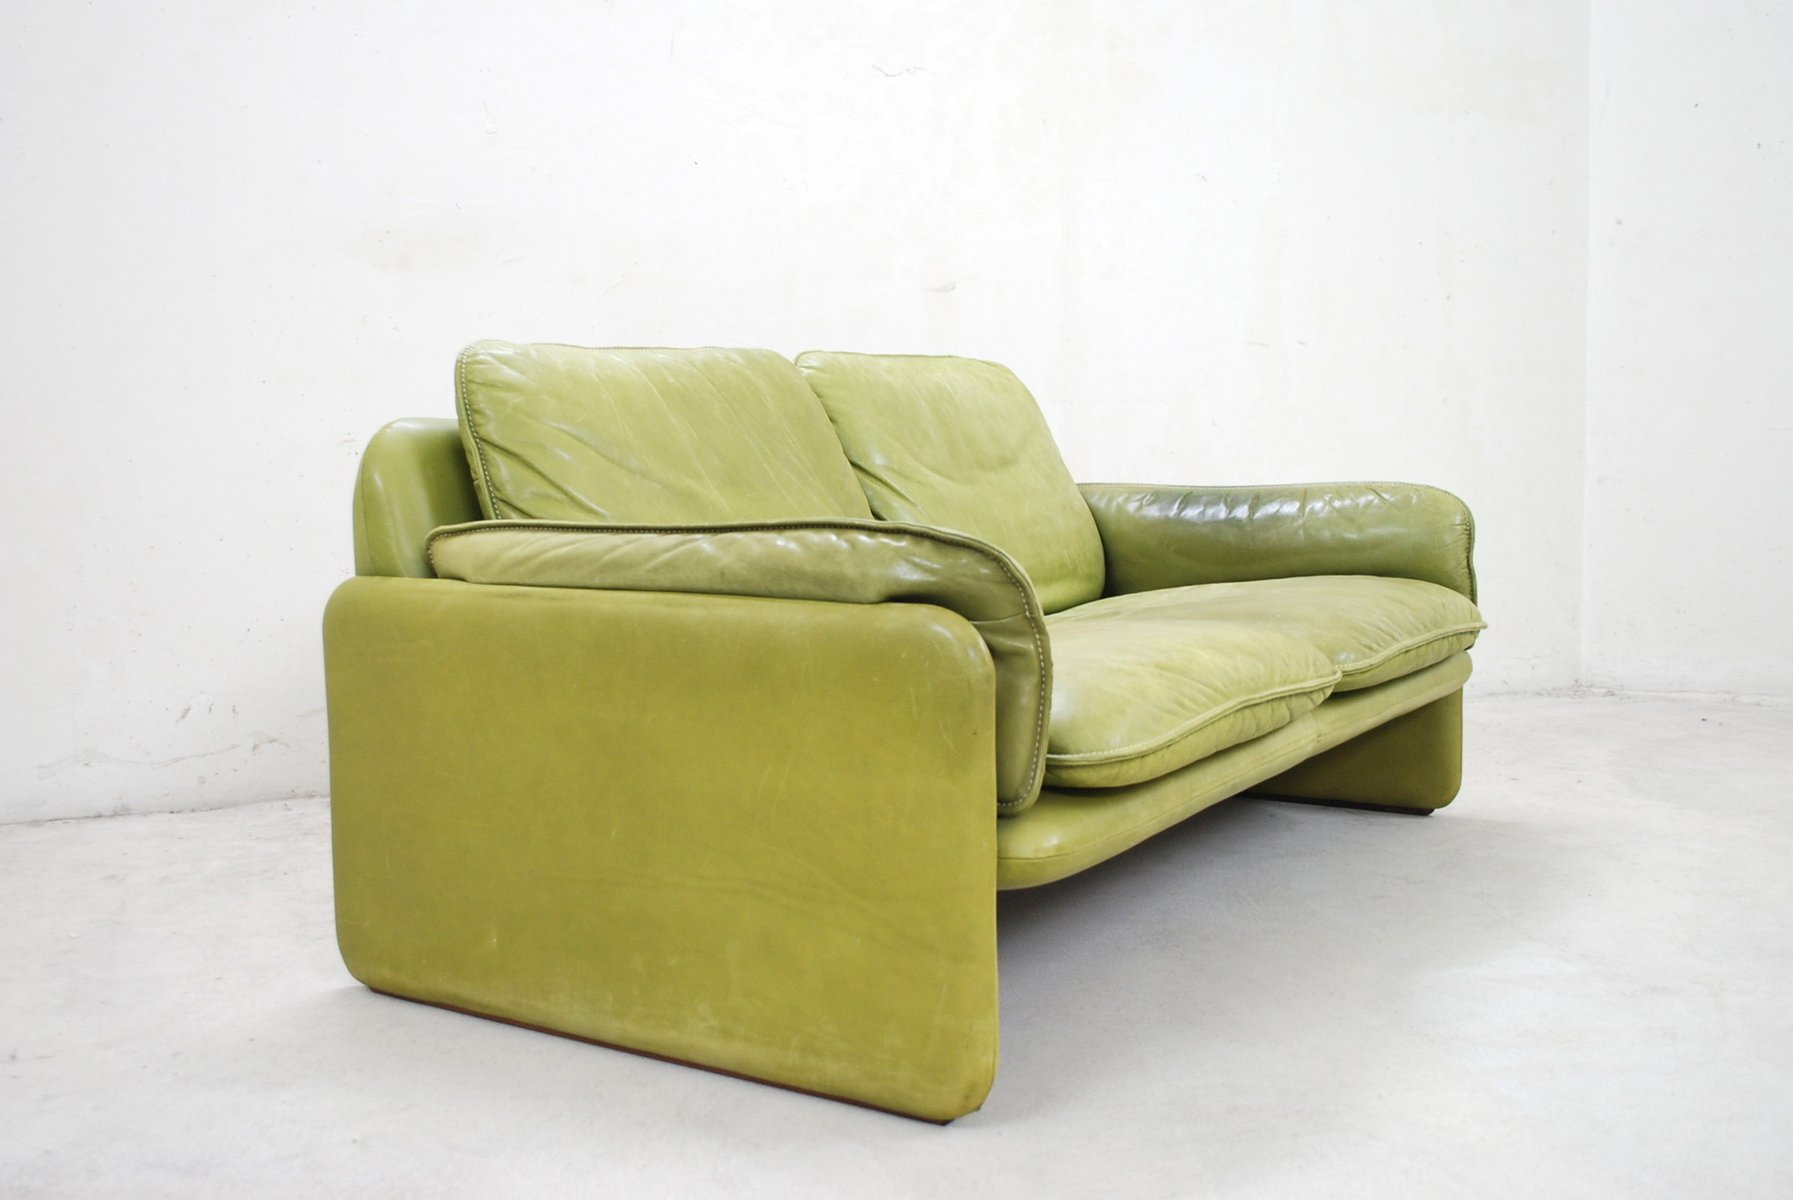 lime green chairs for sale designer chair covers to go bromley vintage ds 61 leather sofa by de sede